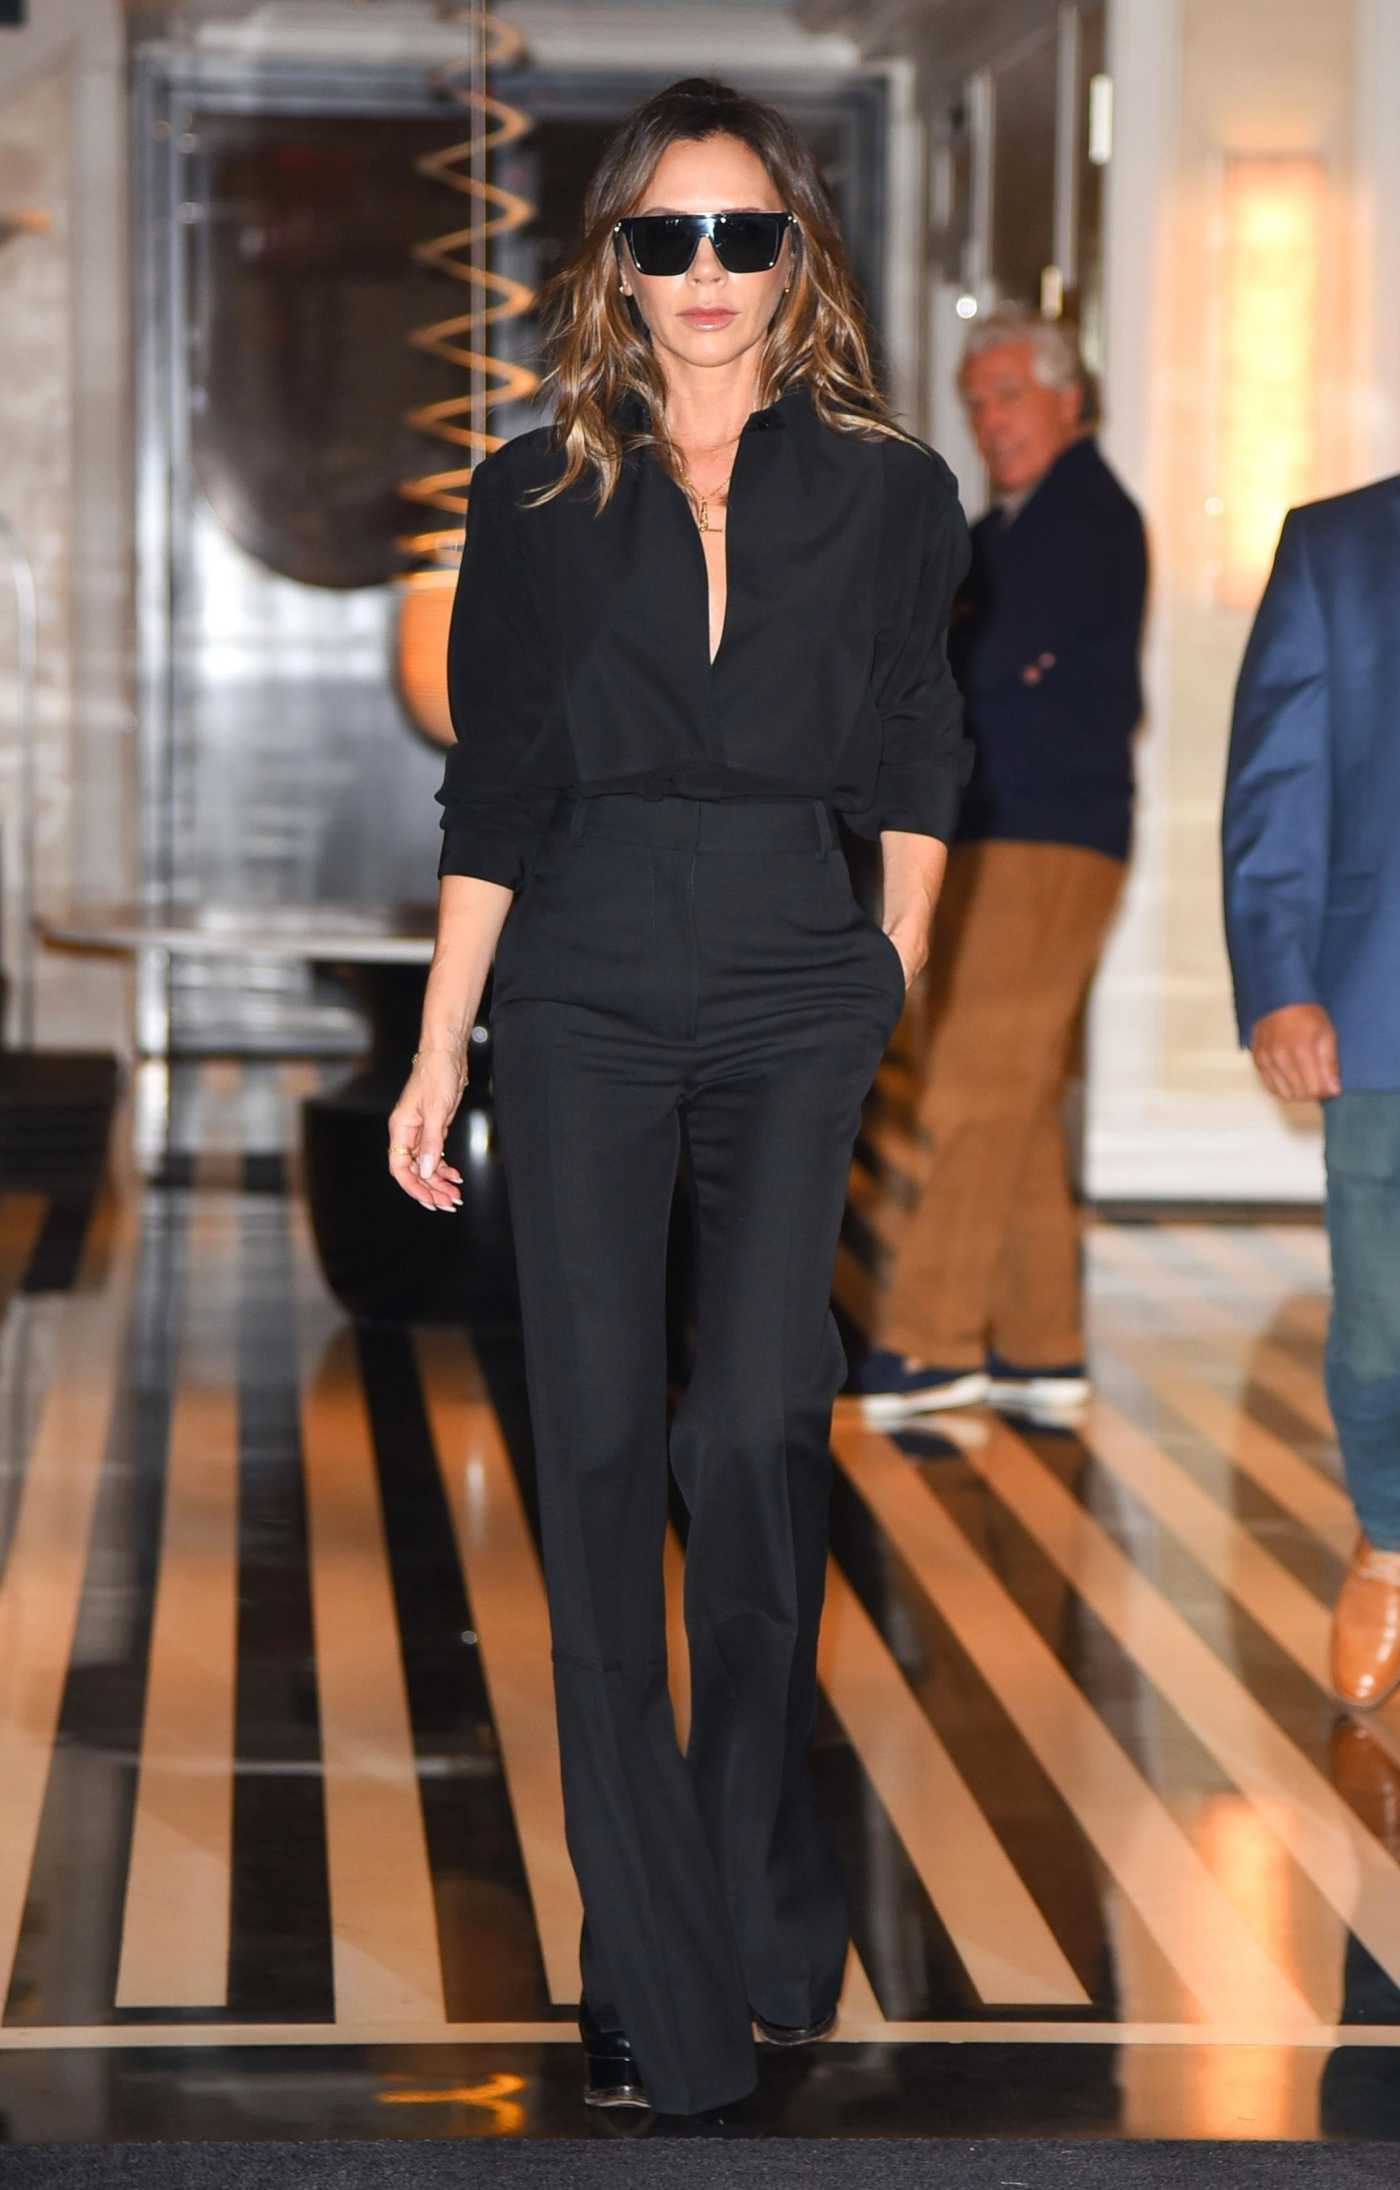 Victoria Beckham in a Black Outfit Leaves Her Hotel in New York 10/13/2021